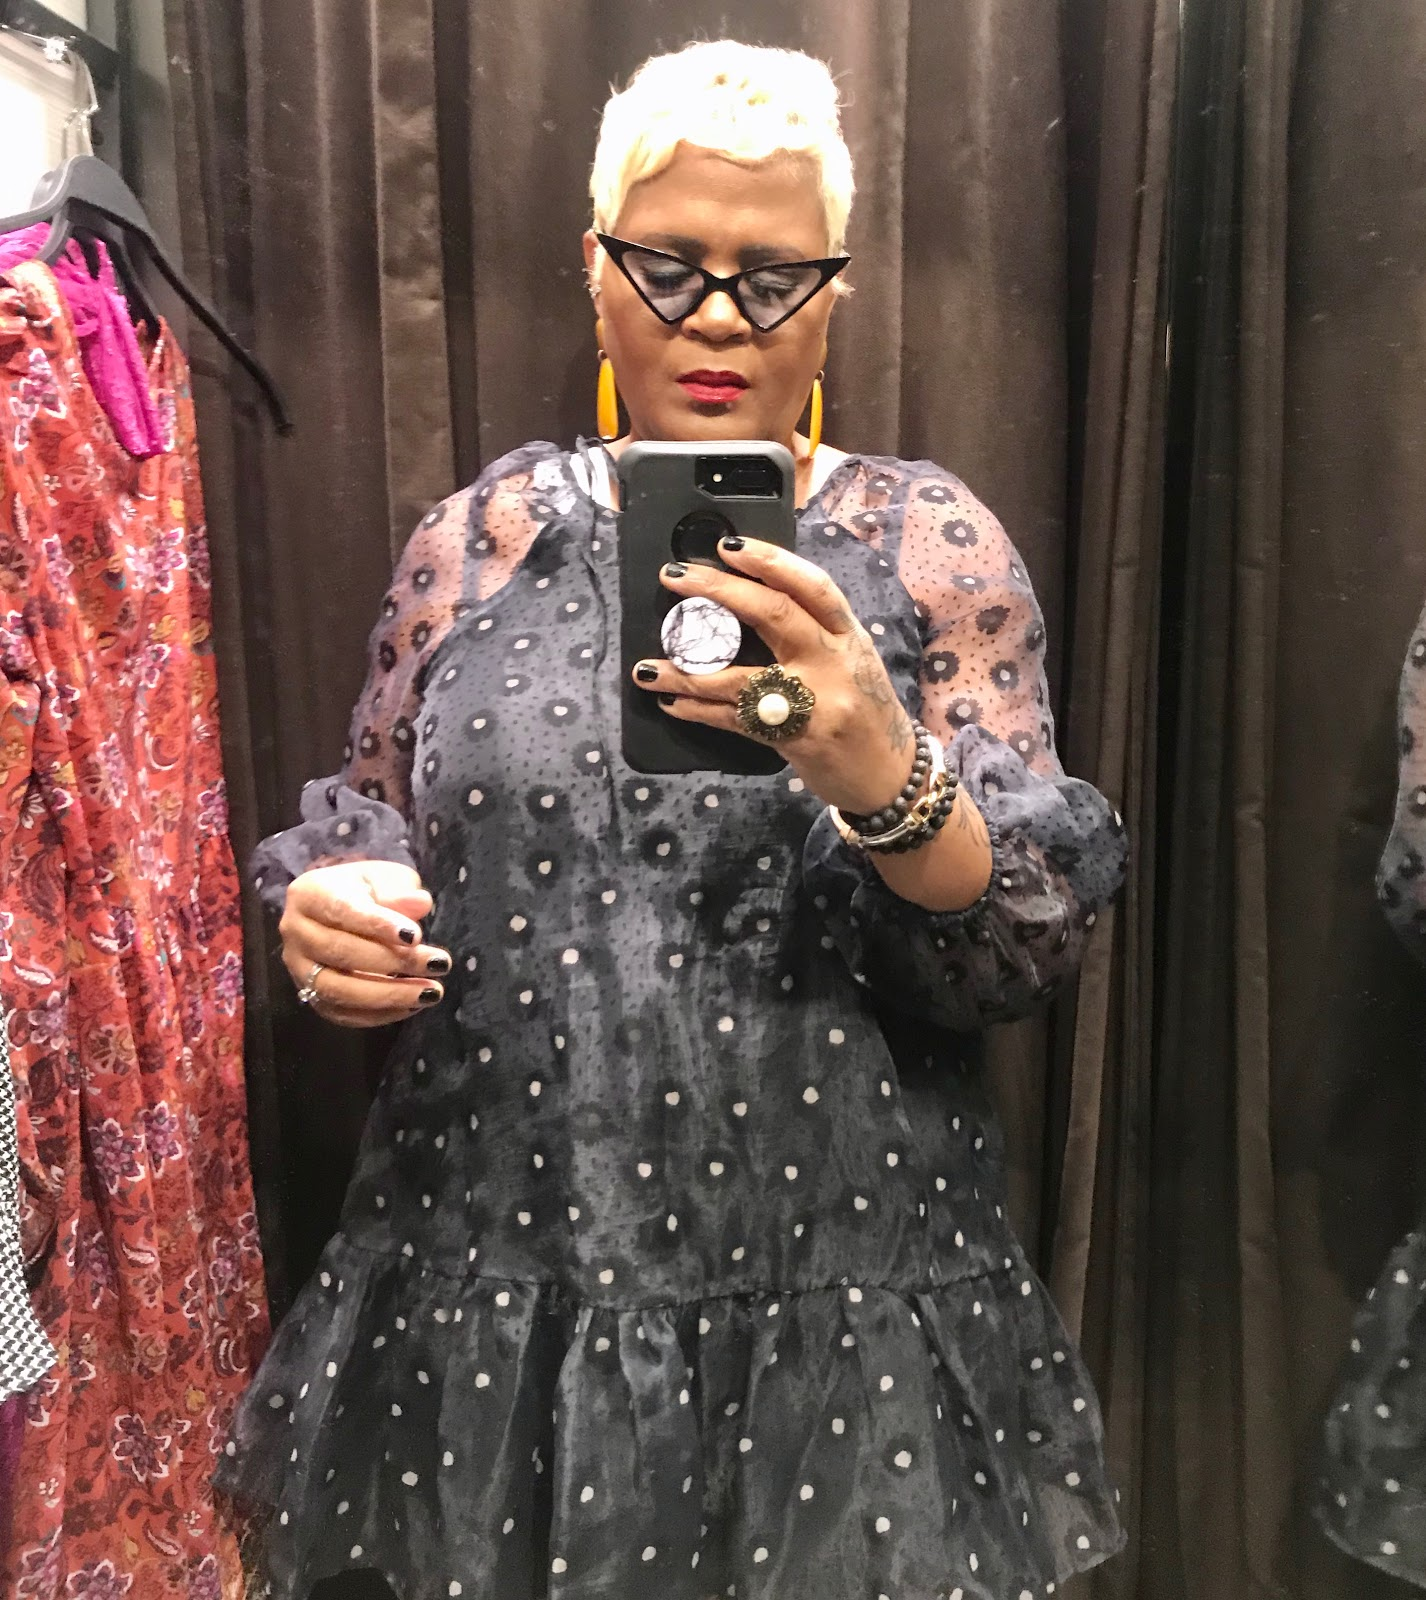 Dress try on and haul at Zara Mall in Dallas Texas